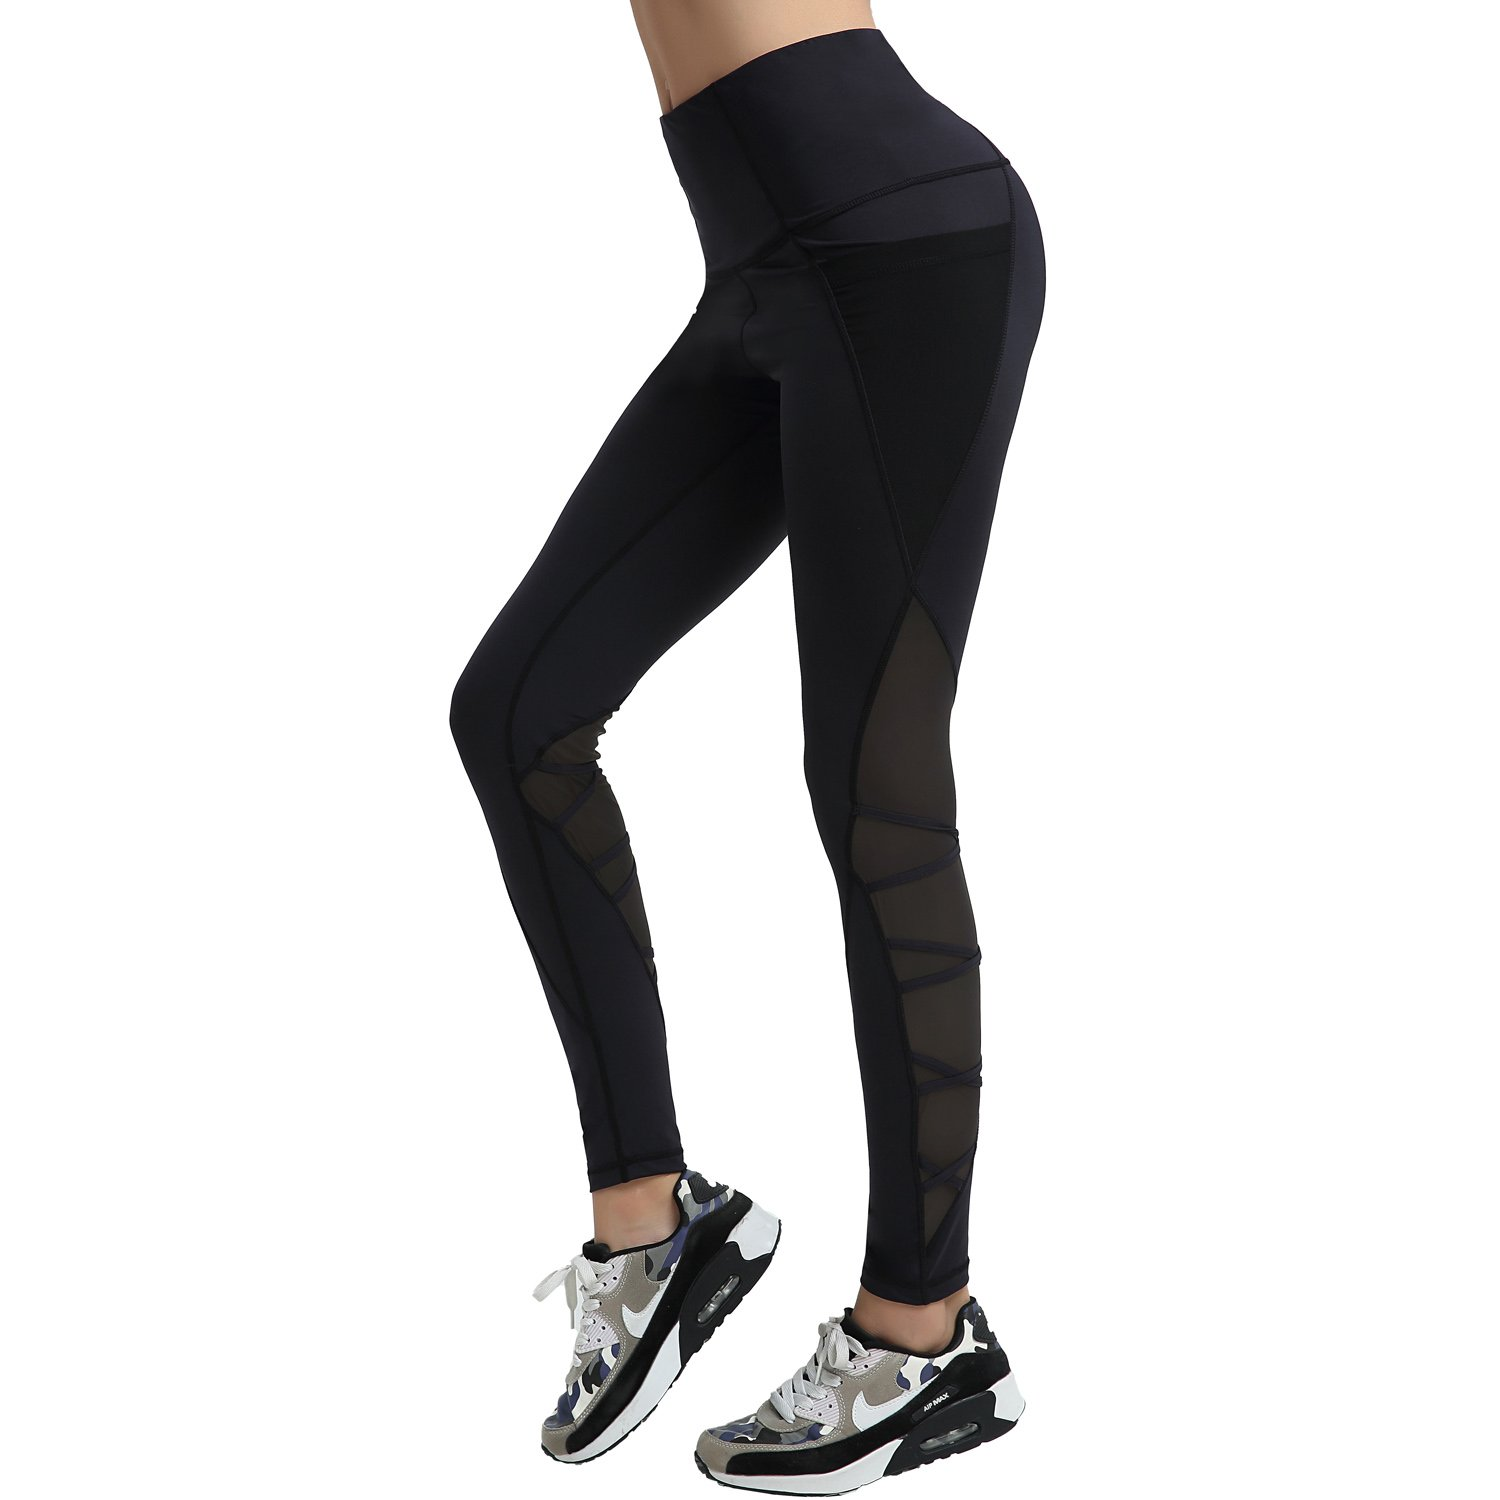 AIYIHAN Women Active Yoga Pants Running Sports Workout Leggings Hidden Pocket